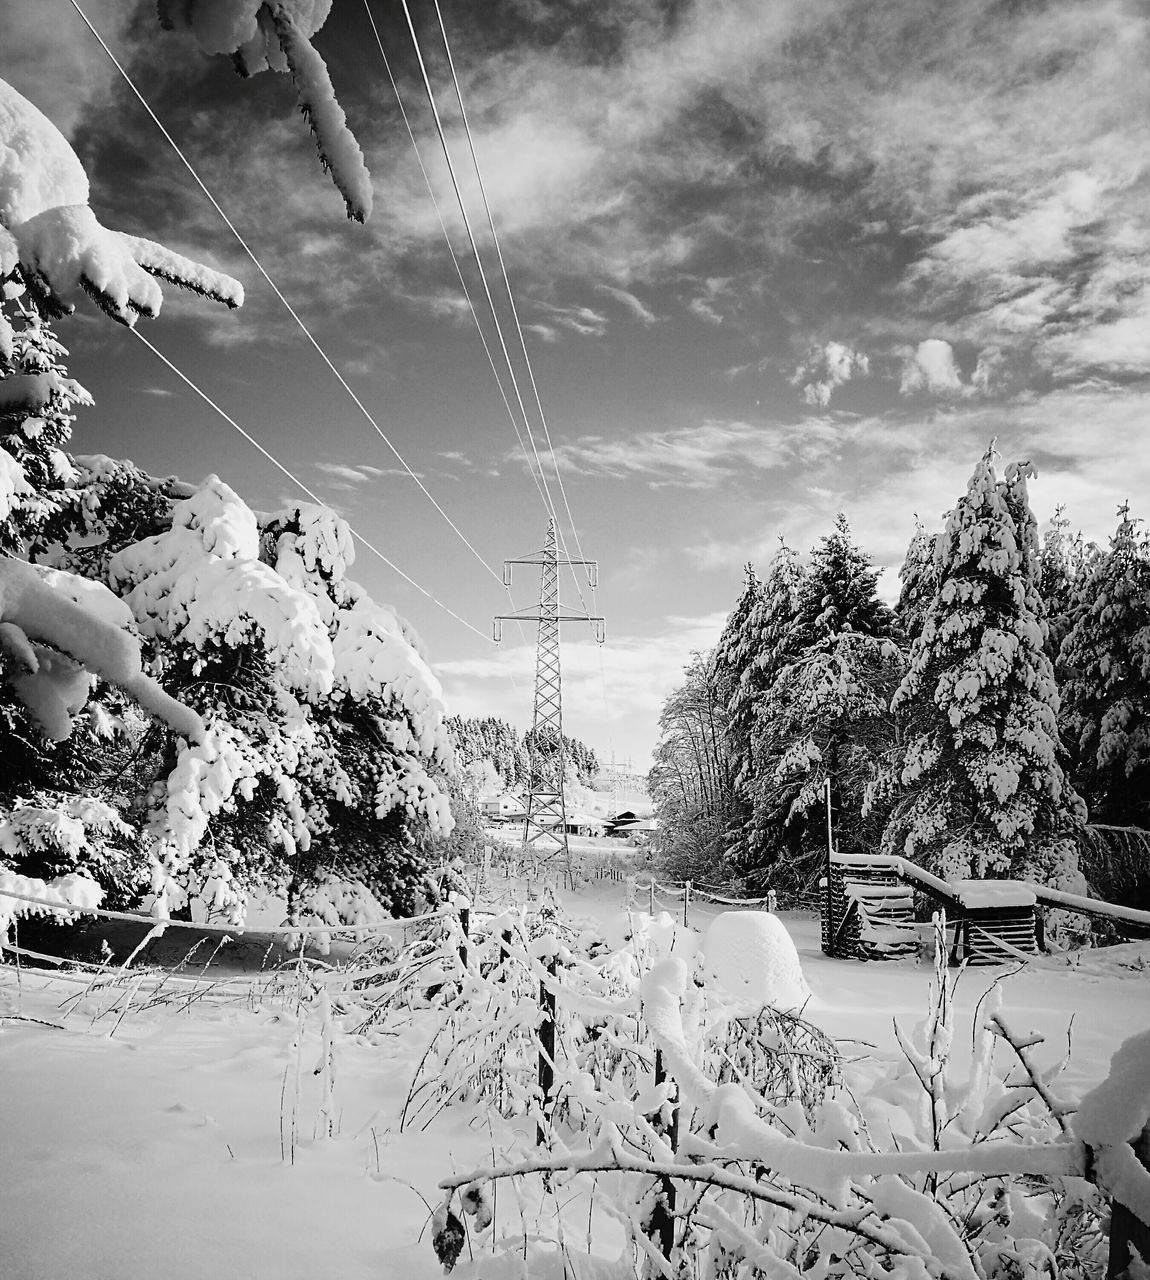 winter, snow, cold temperature, nature, weather, sky, tree, cable, outdoors, day, no people, beauty in nature, scenics, electricity pylon, ski lift